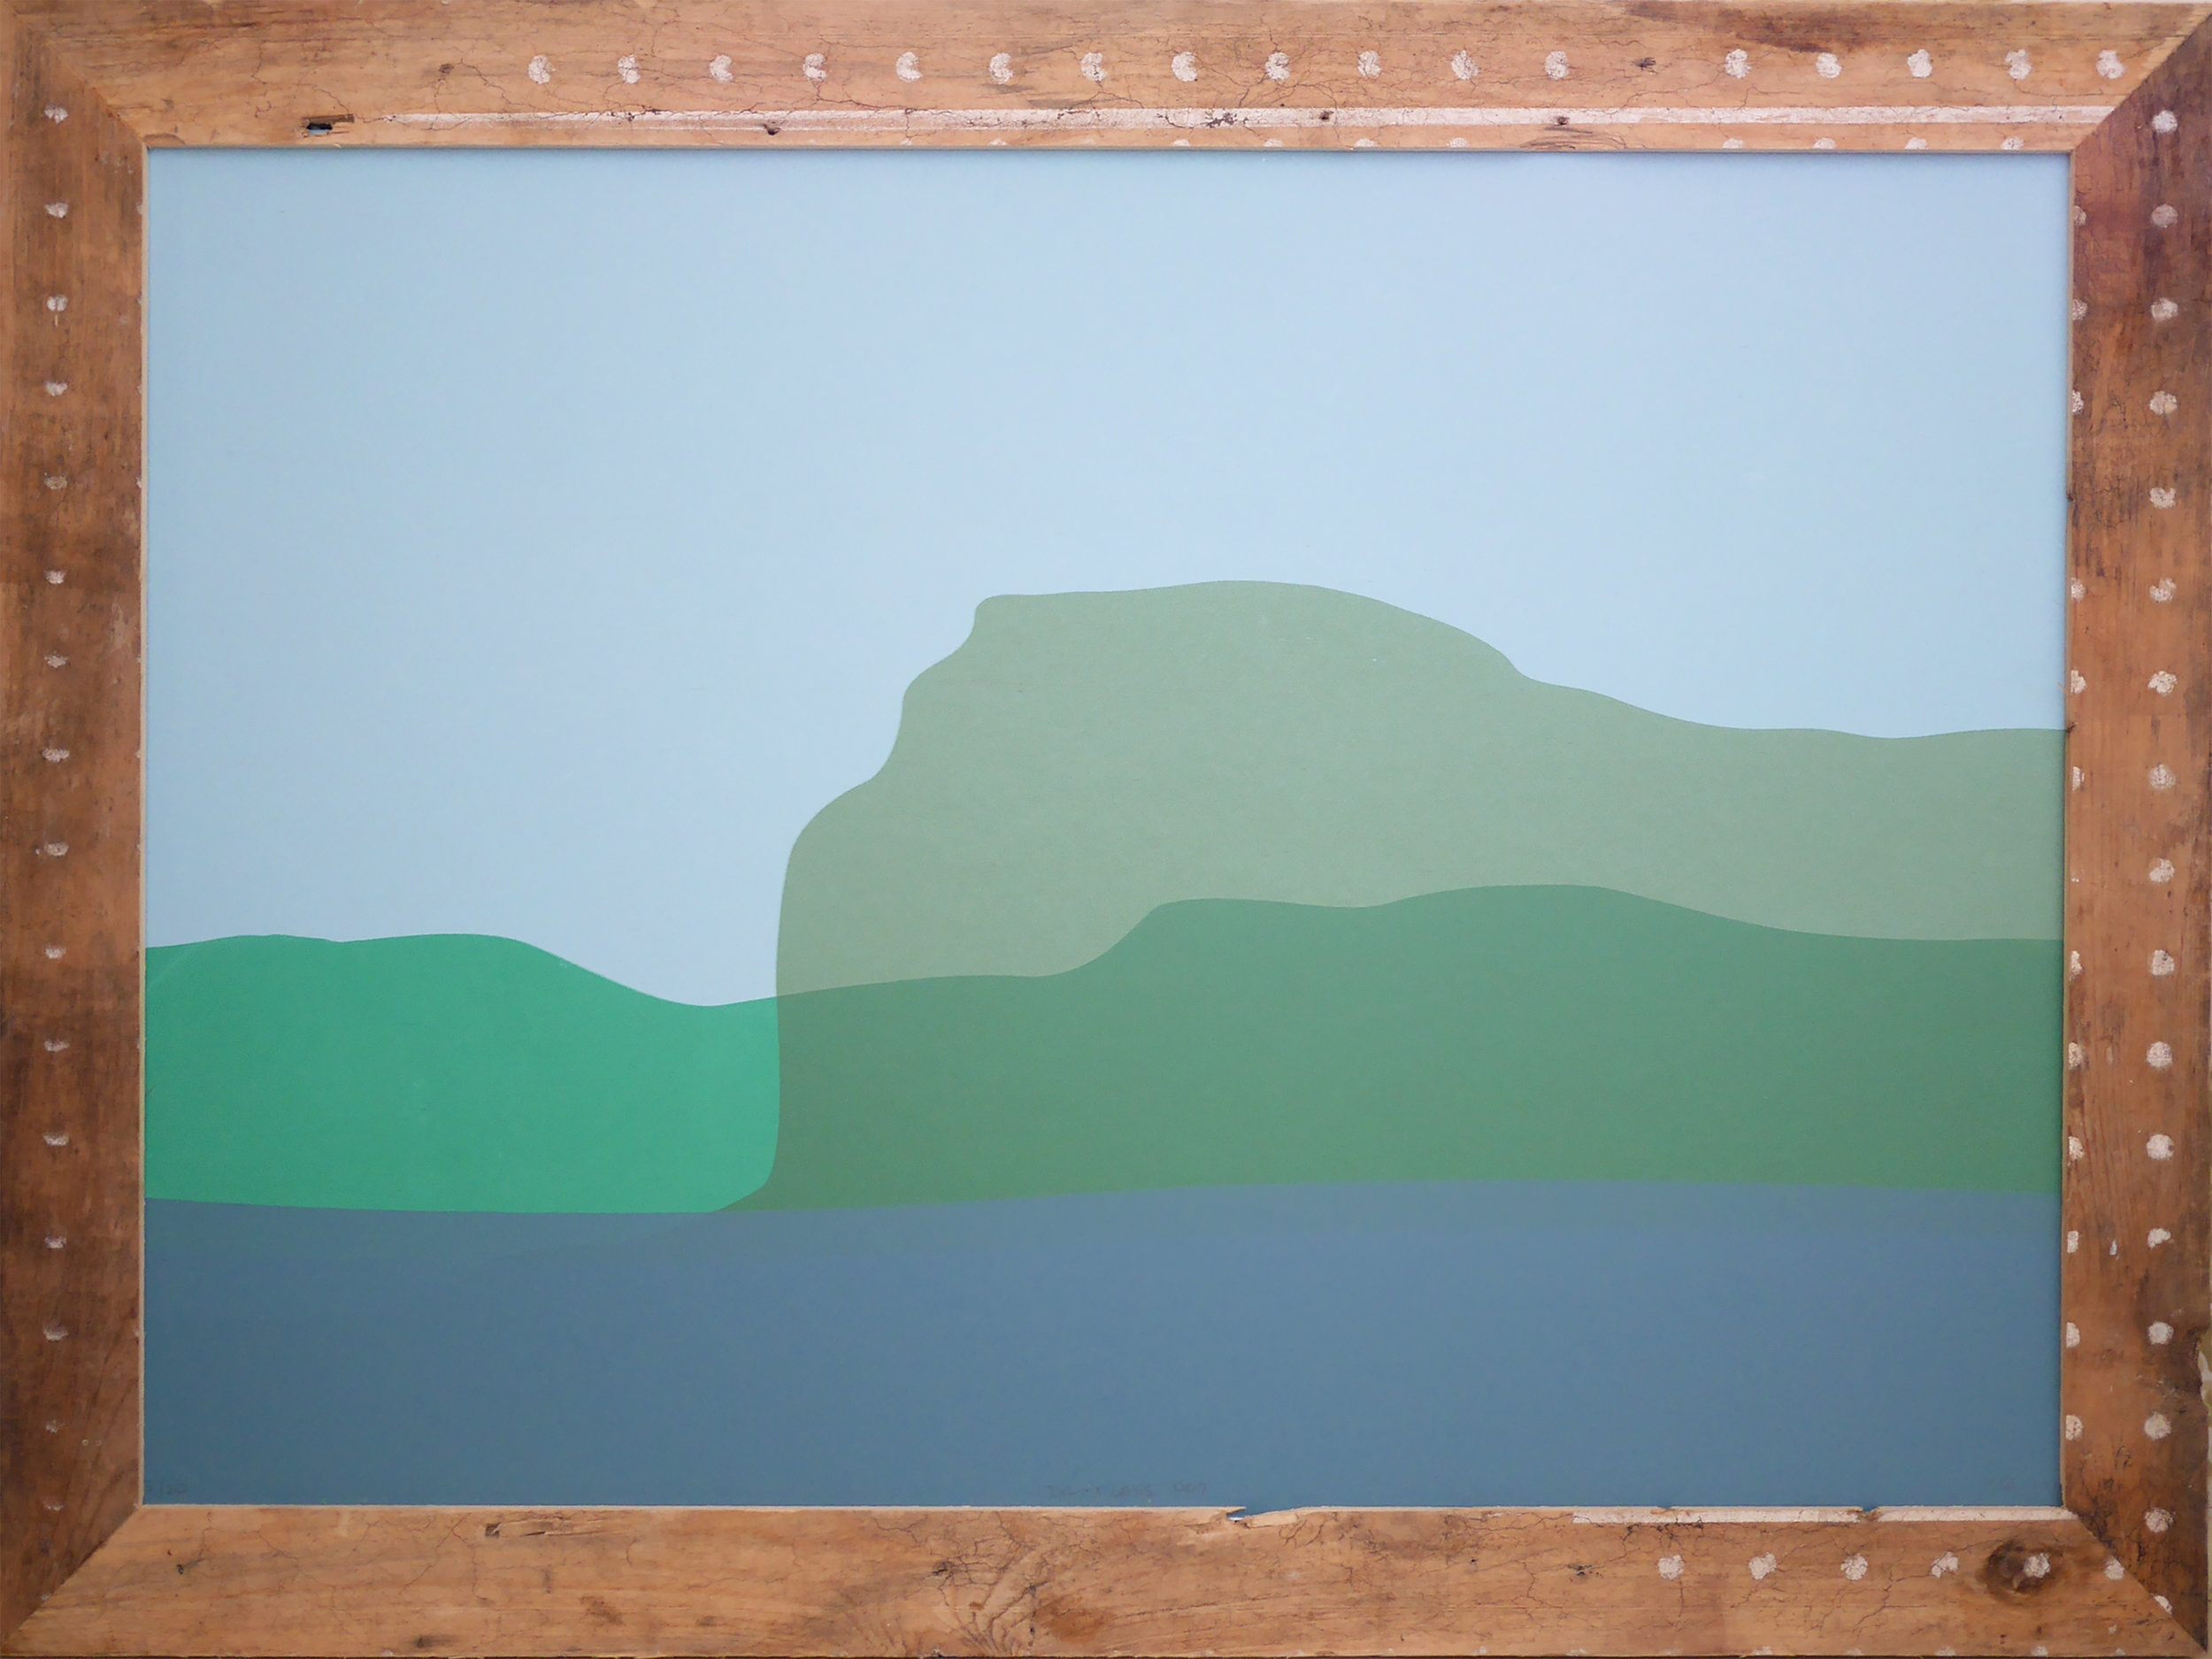 wyalusing_screenprint 18%22x24%22 2015_craiggrabhorn.jpg